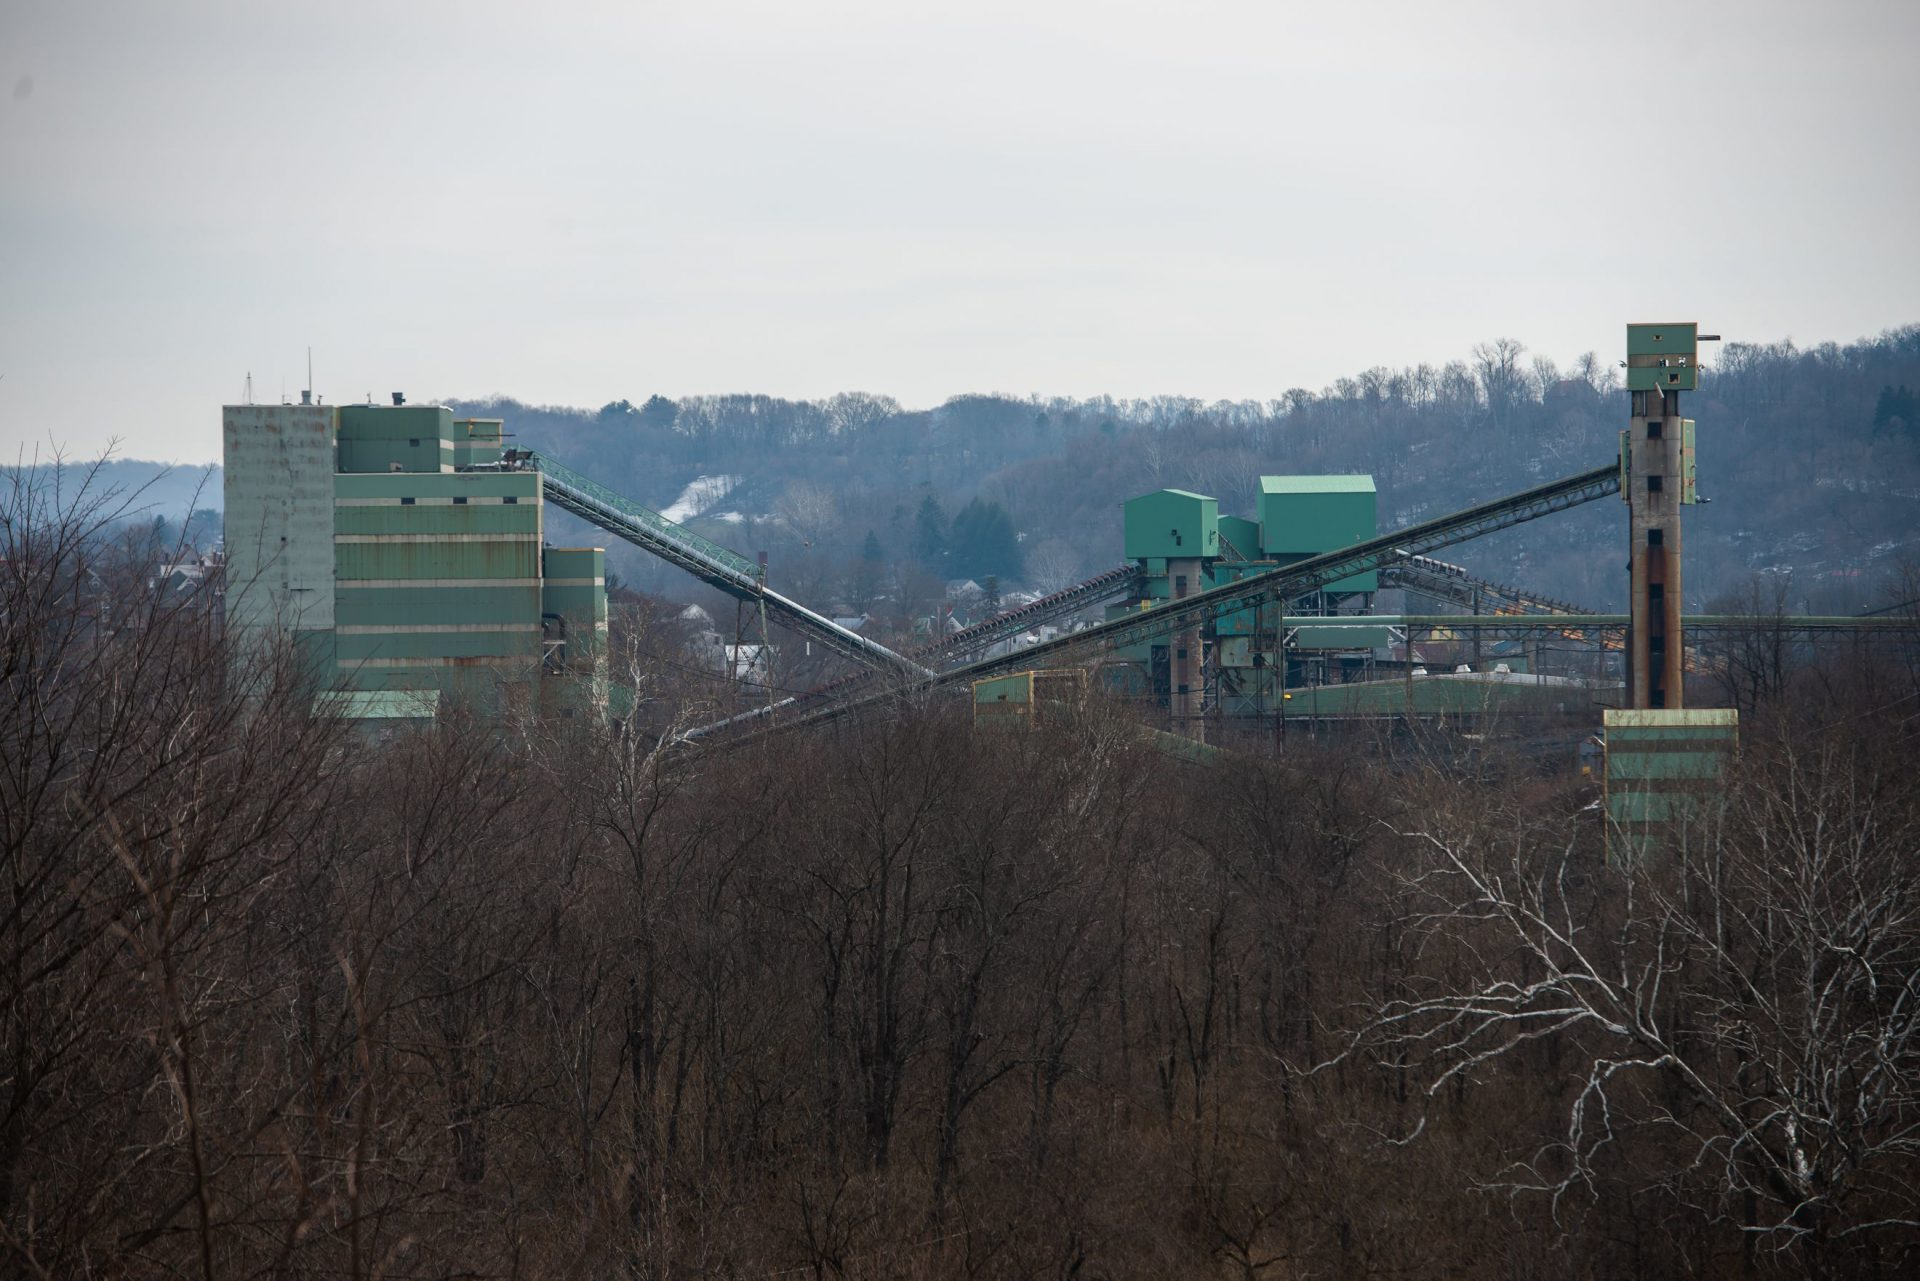 Towering remnants of the abandoned coal mine known as Emerald Mine are seen on the outskirts of Waynesburg in Greene County.